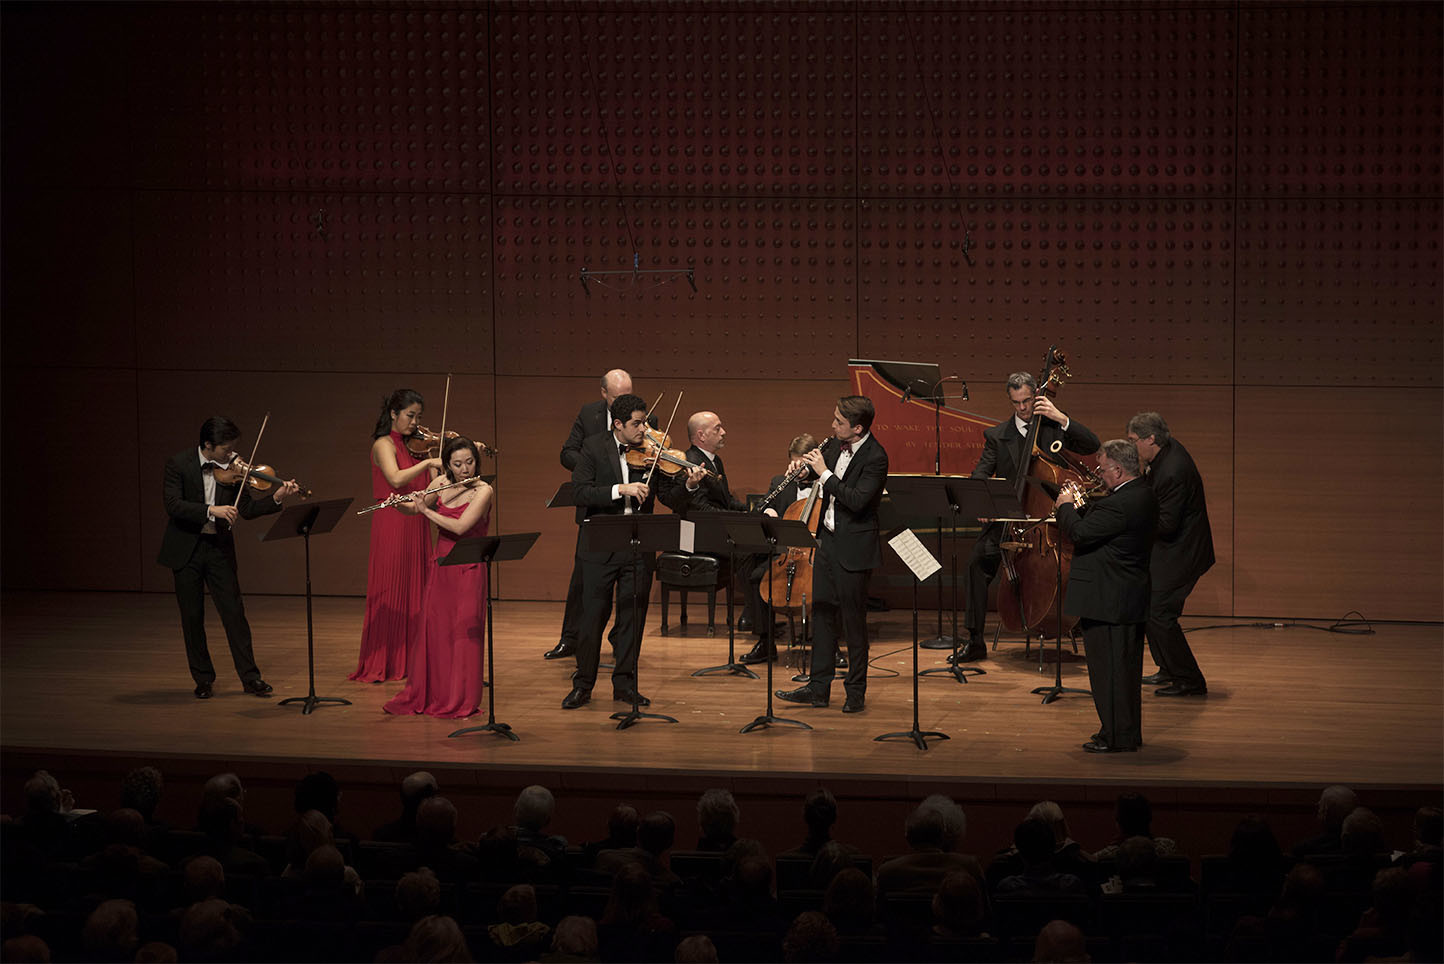 Performance at Alice Tully Hall